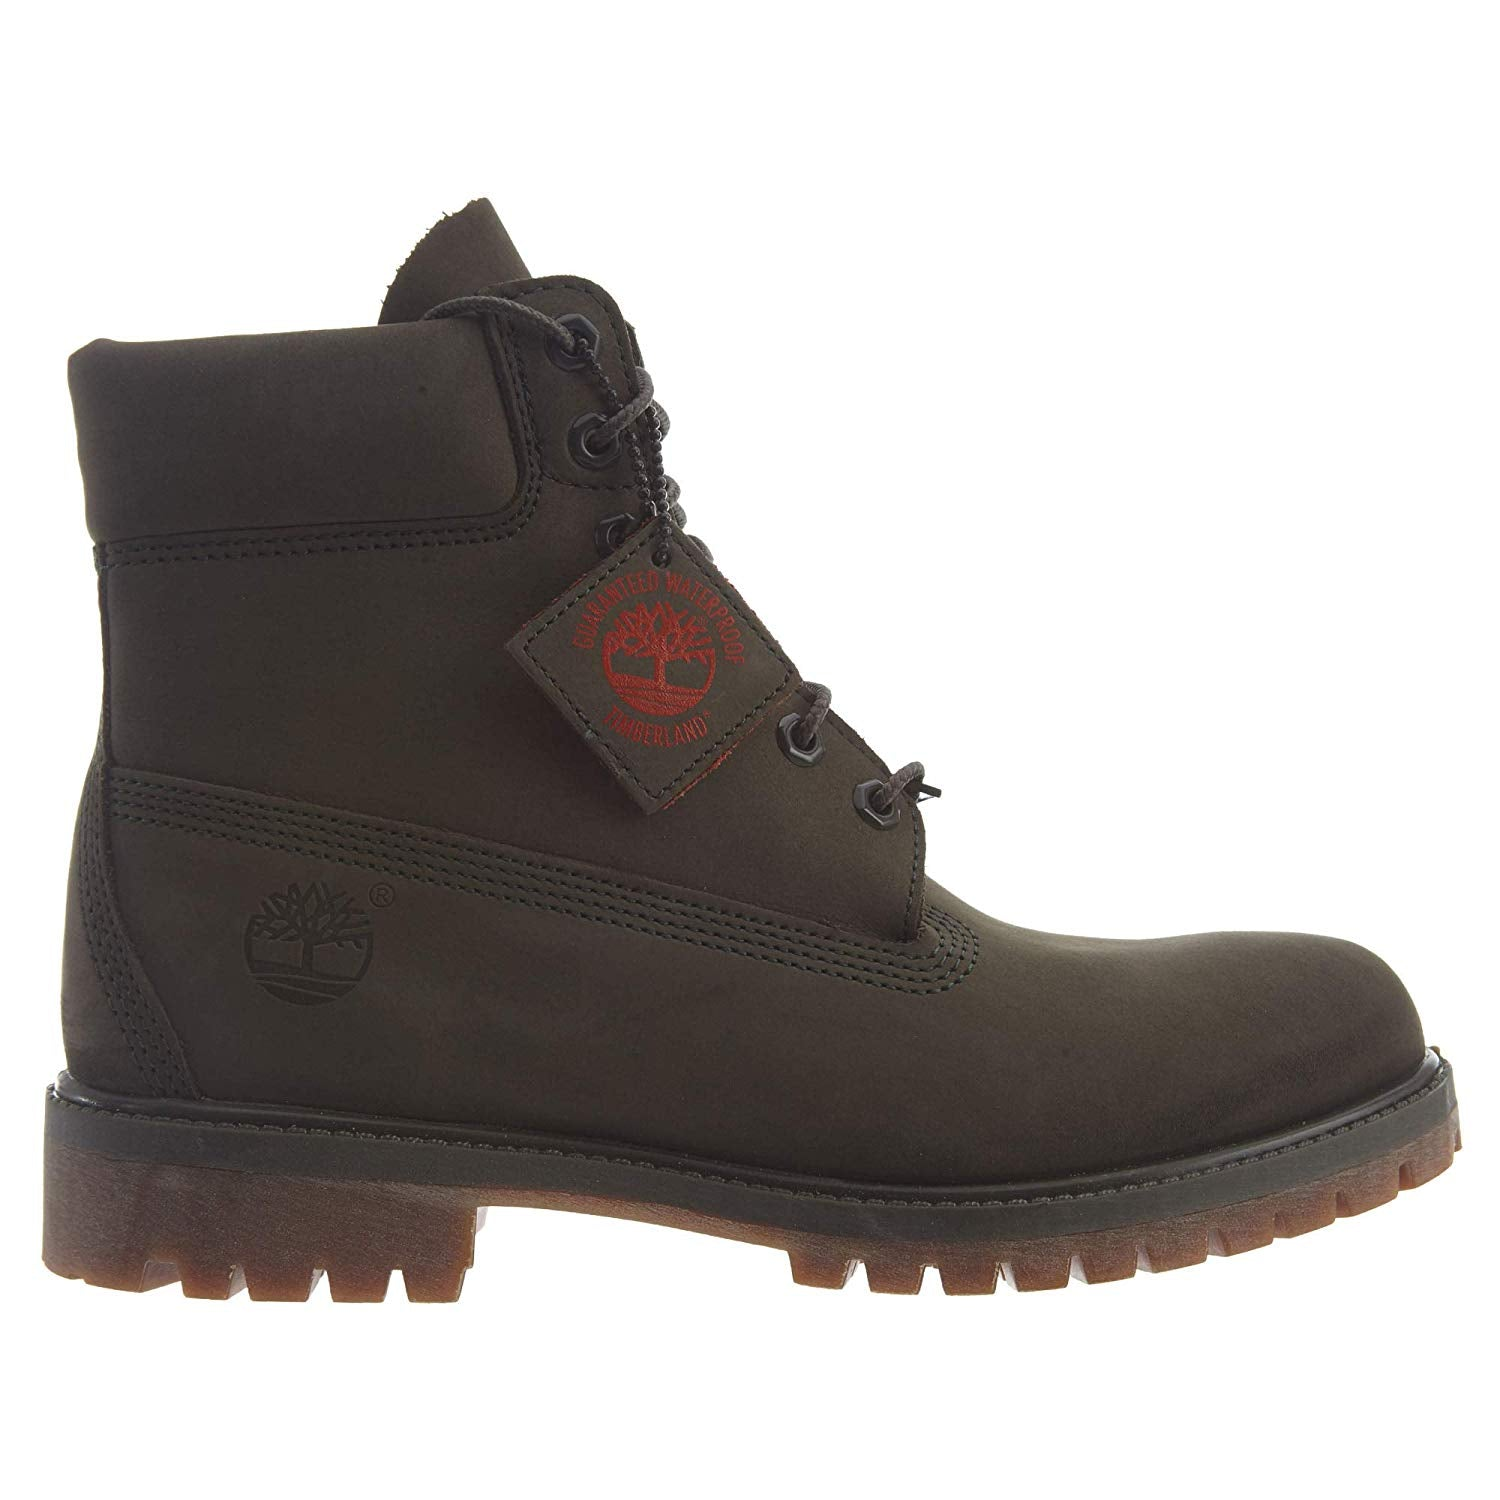 TIMBERLAND 6-INCH PREMIUM WATERPROOF MEN'S BOOTS TB0A1Z4UA58